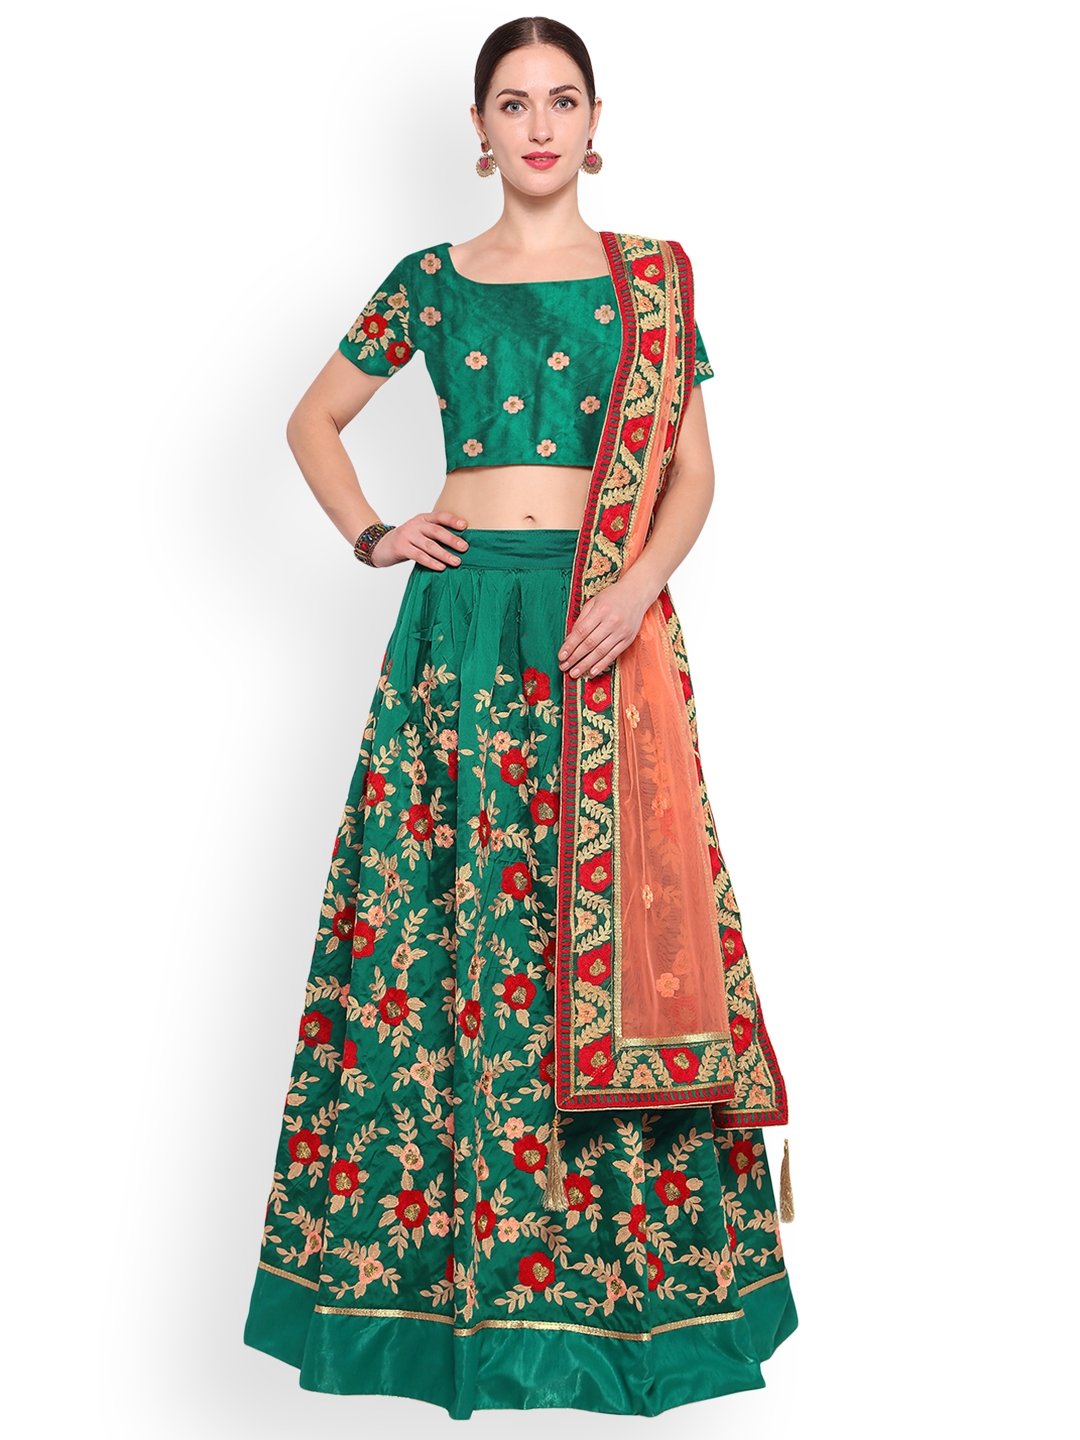 Styles Closet Green & Pink Embroidered Semi-Stitched Lehenga & Unstitched Blouse with Dupatta Price in India